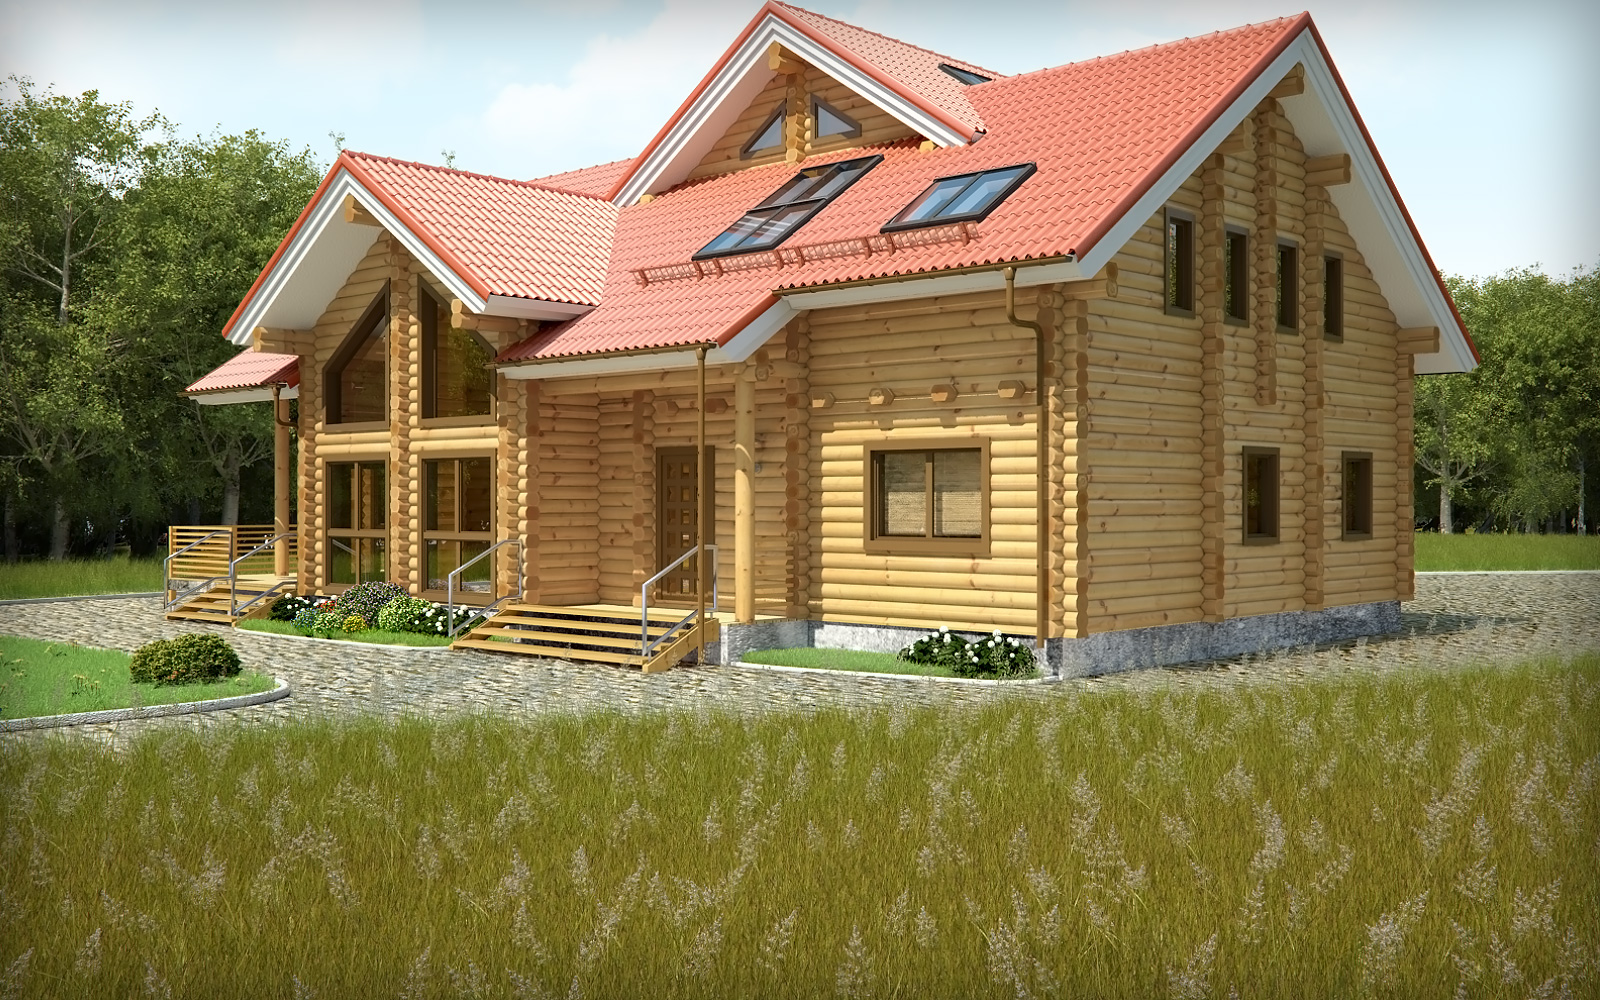 wooden country house design photo - 1